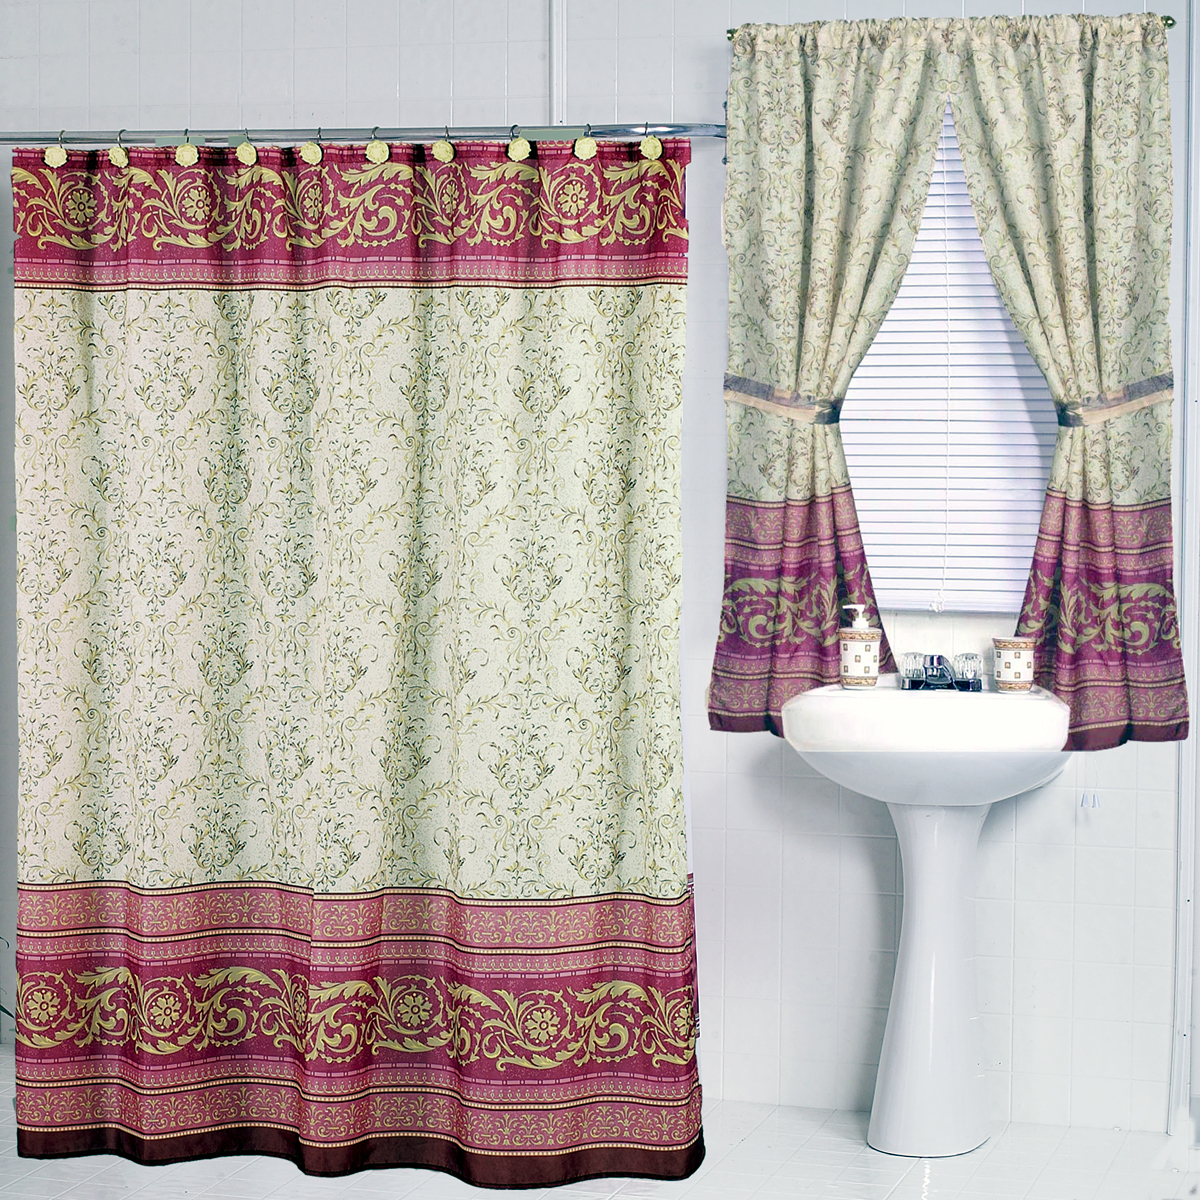 Victorian Shower Curtain Set With Window